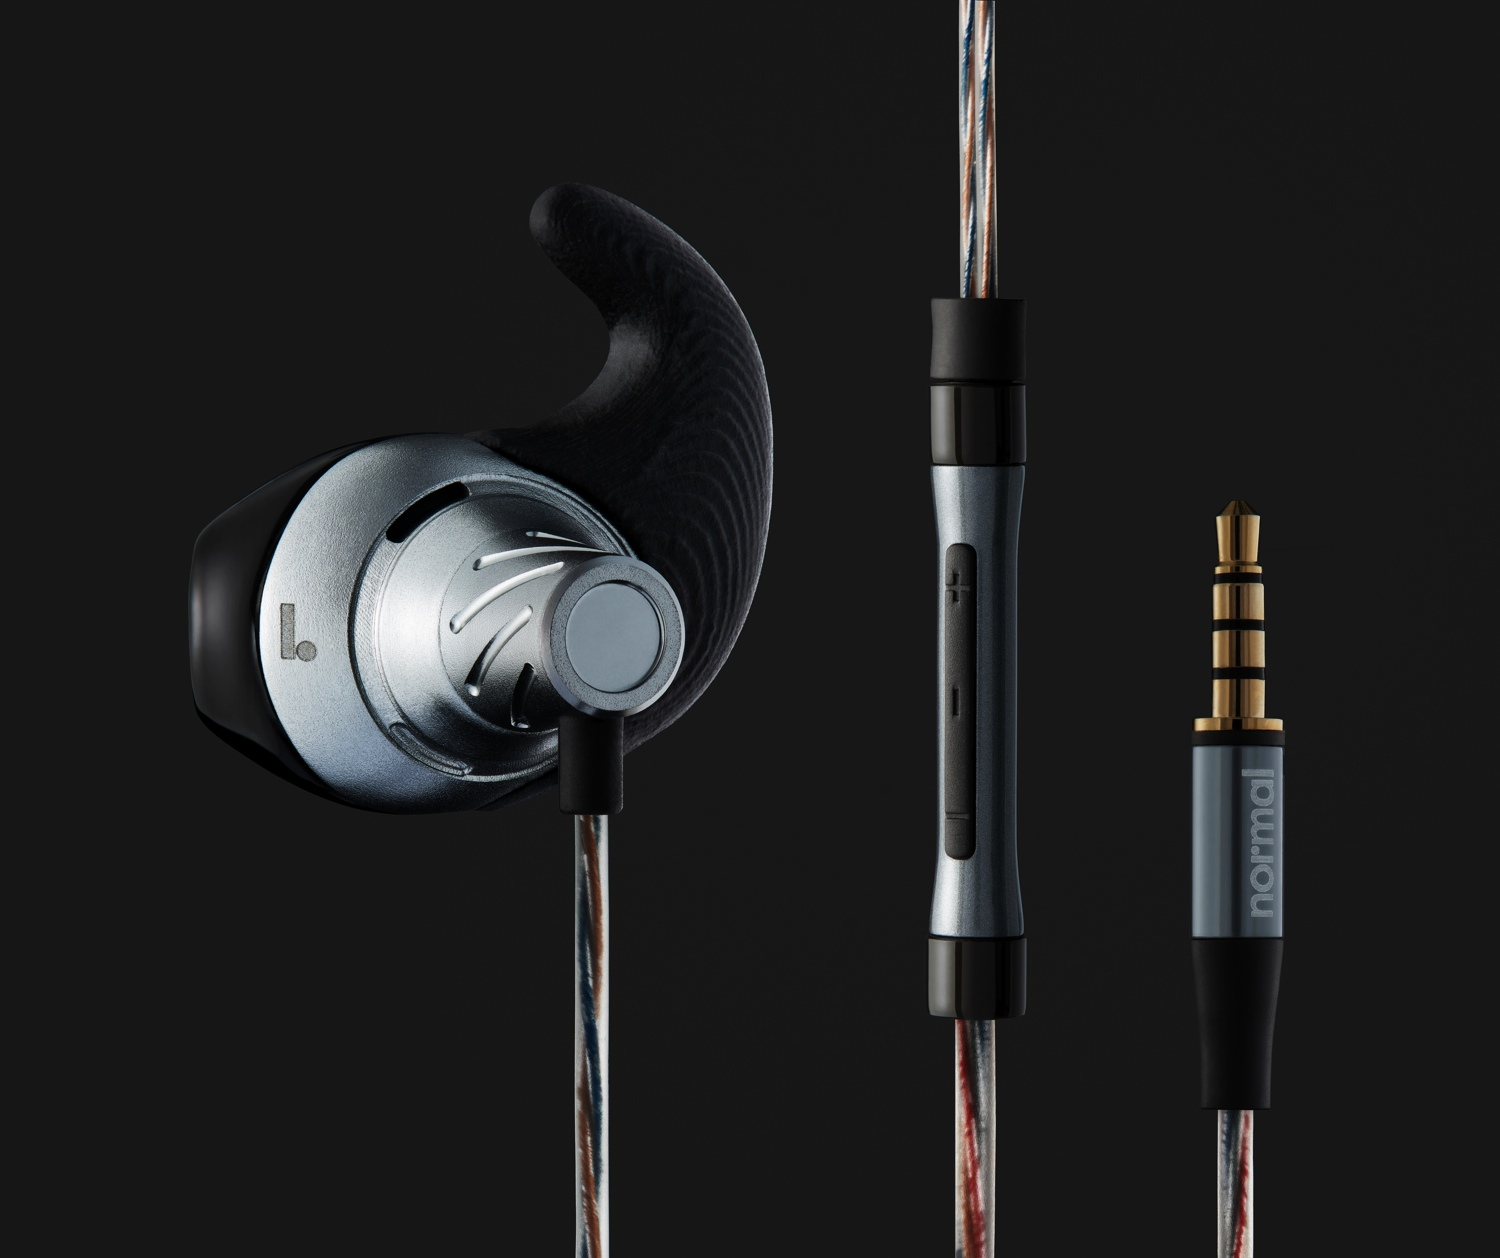 Sony earbuds orange - sony iphone earbuds with microphone